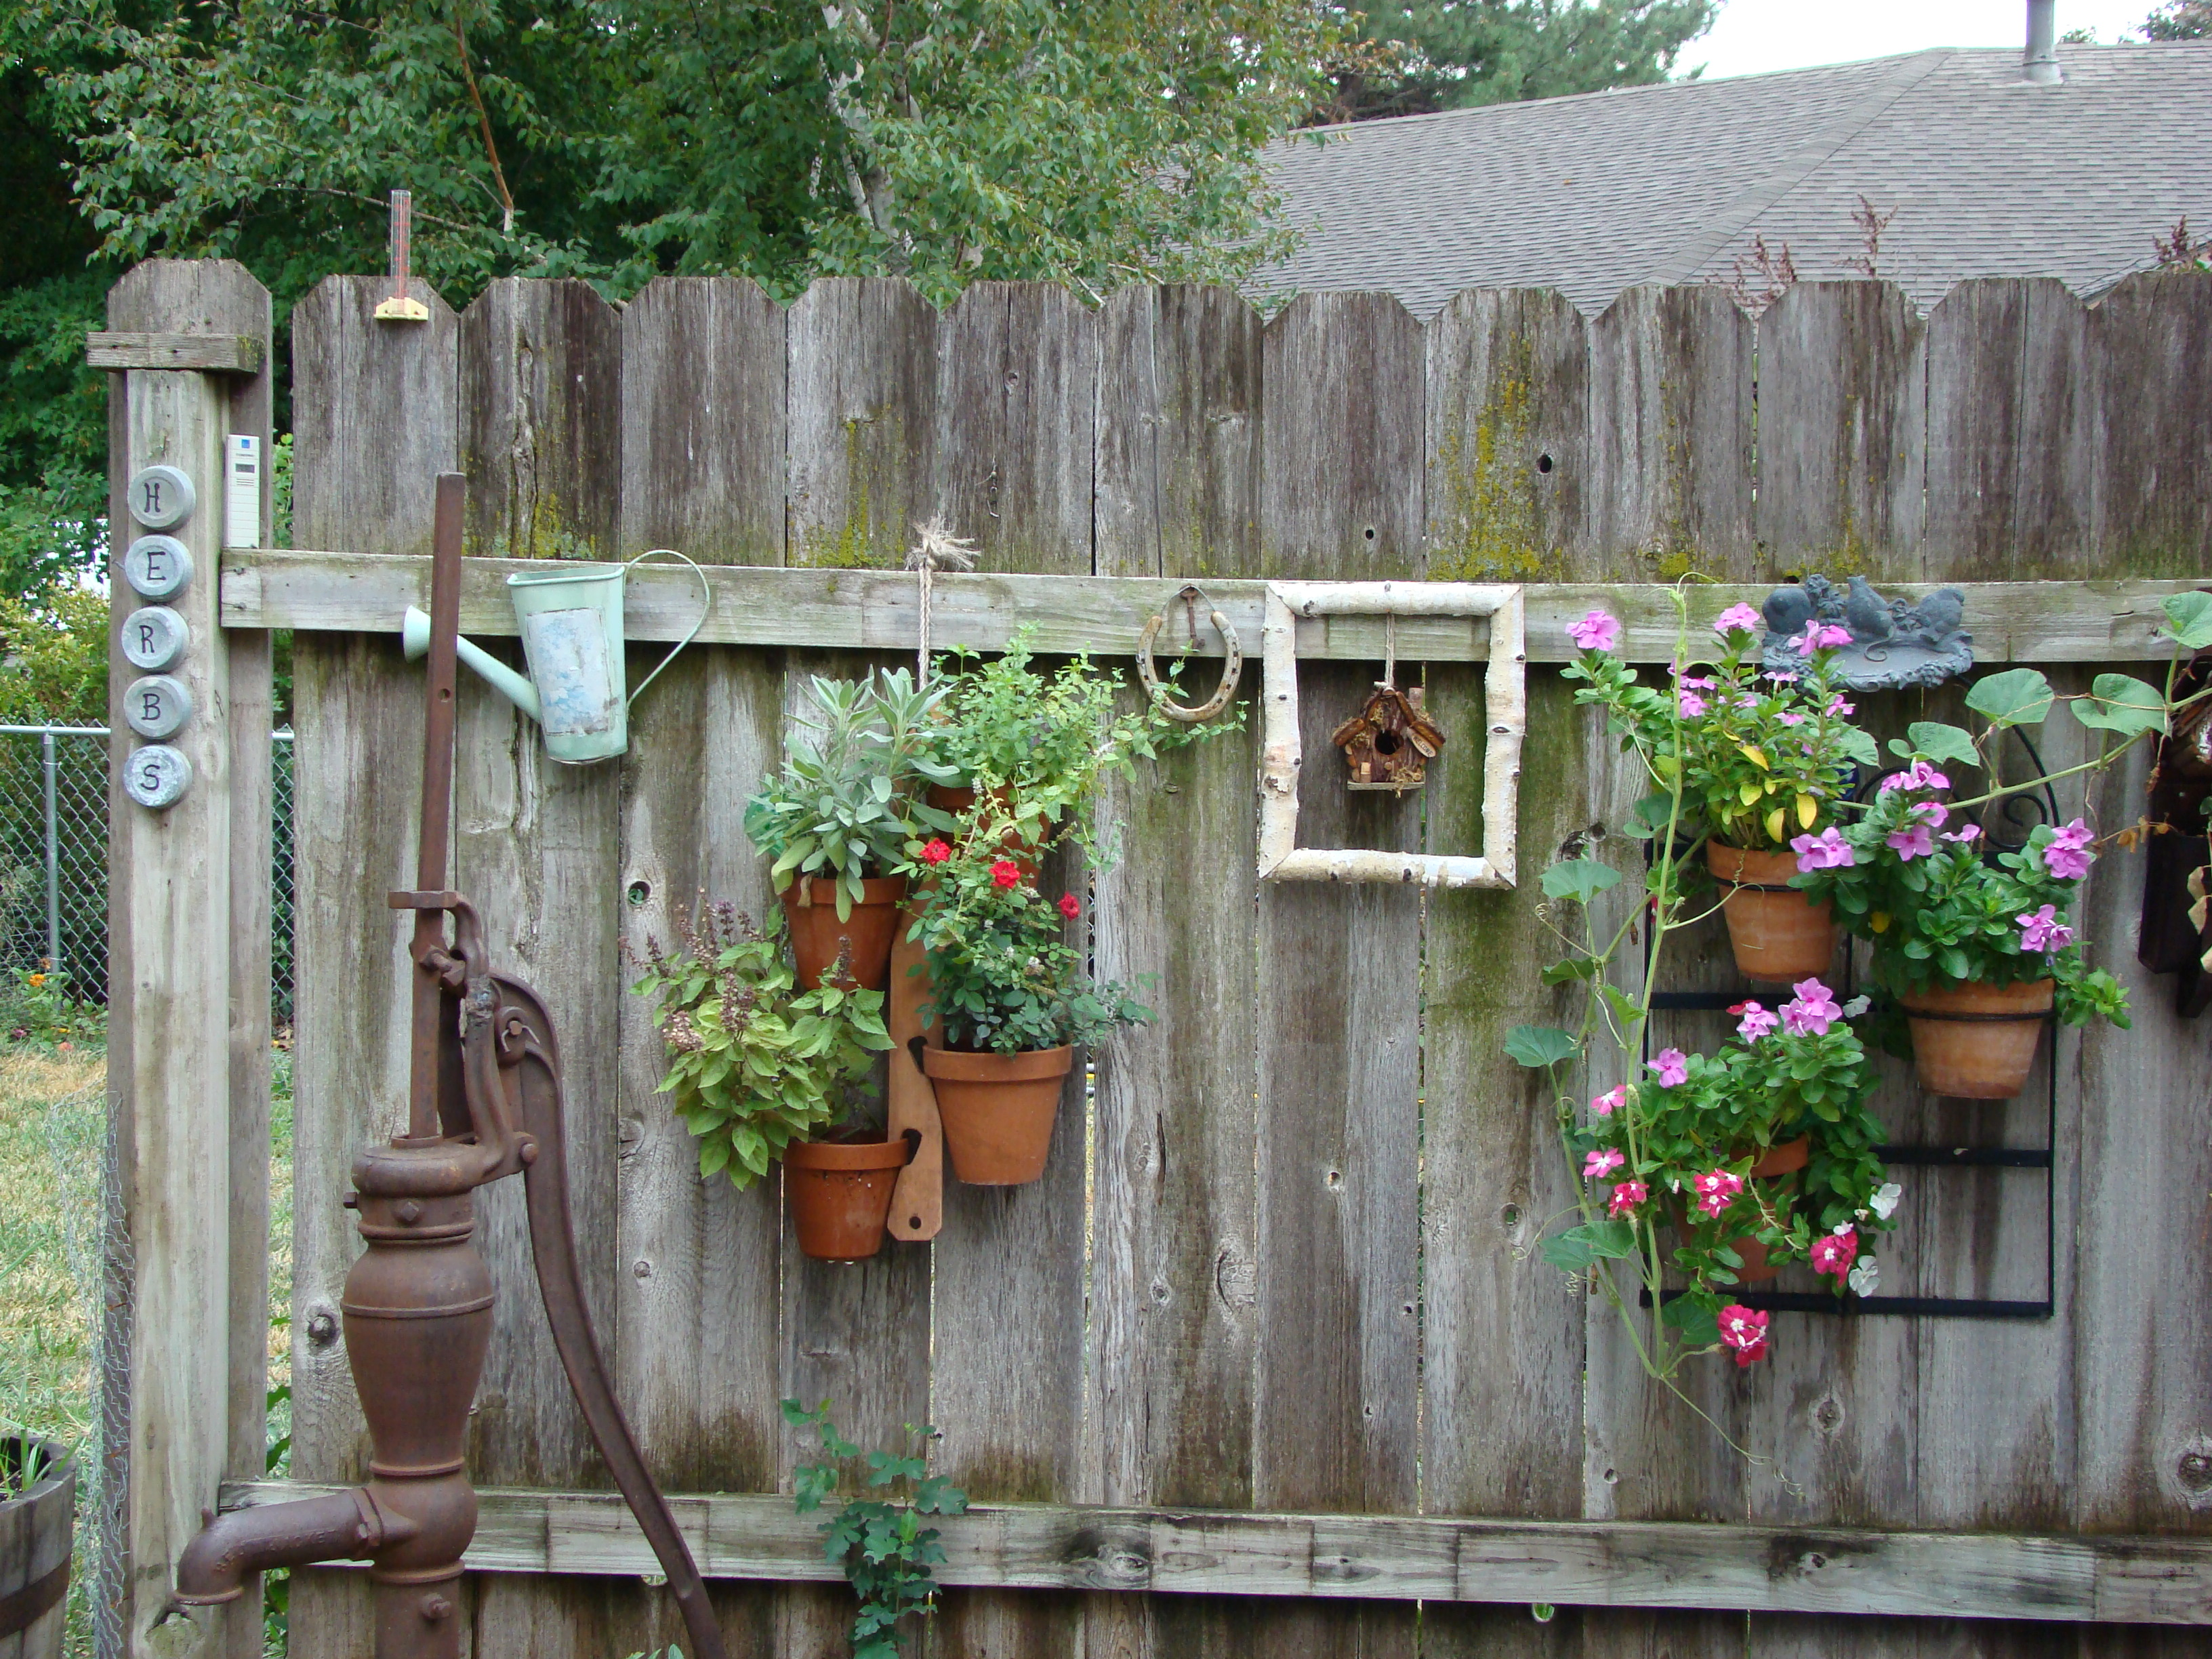 Garden Fence Decor Ideas To Bring Whimsy To The Dull